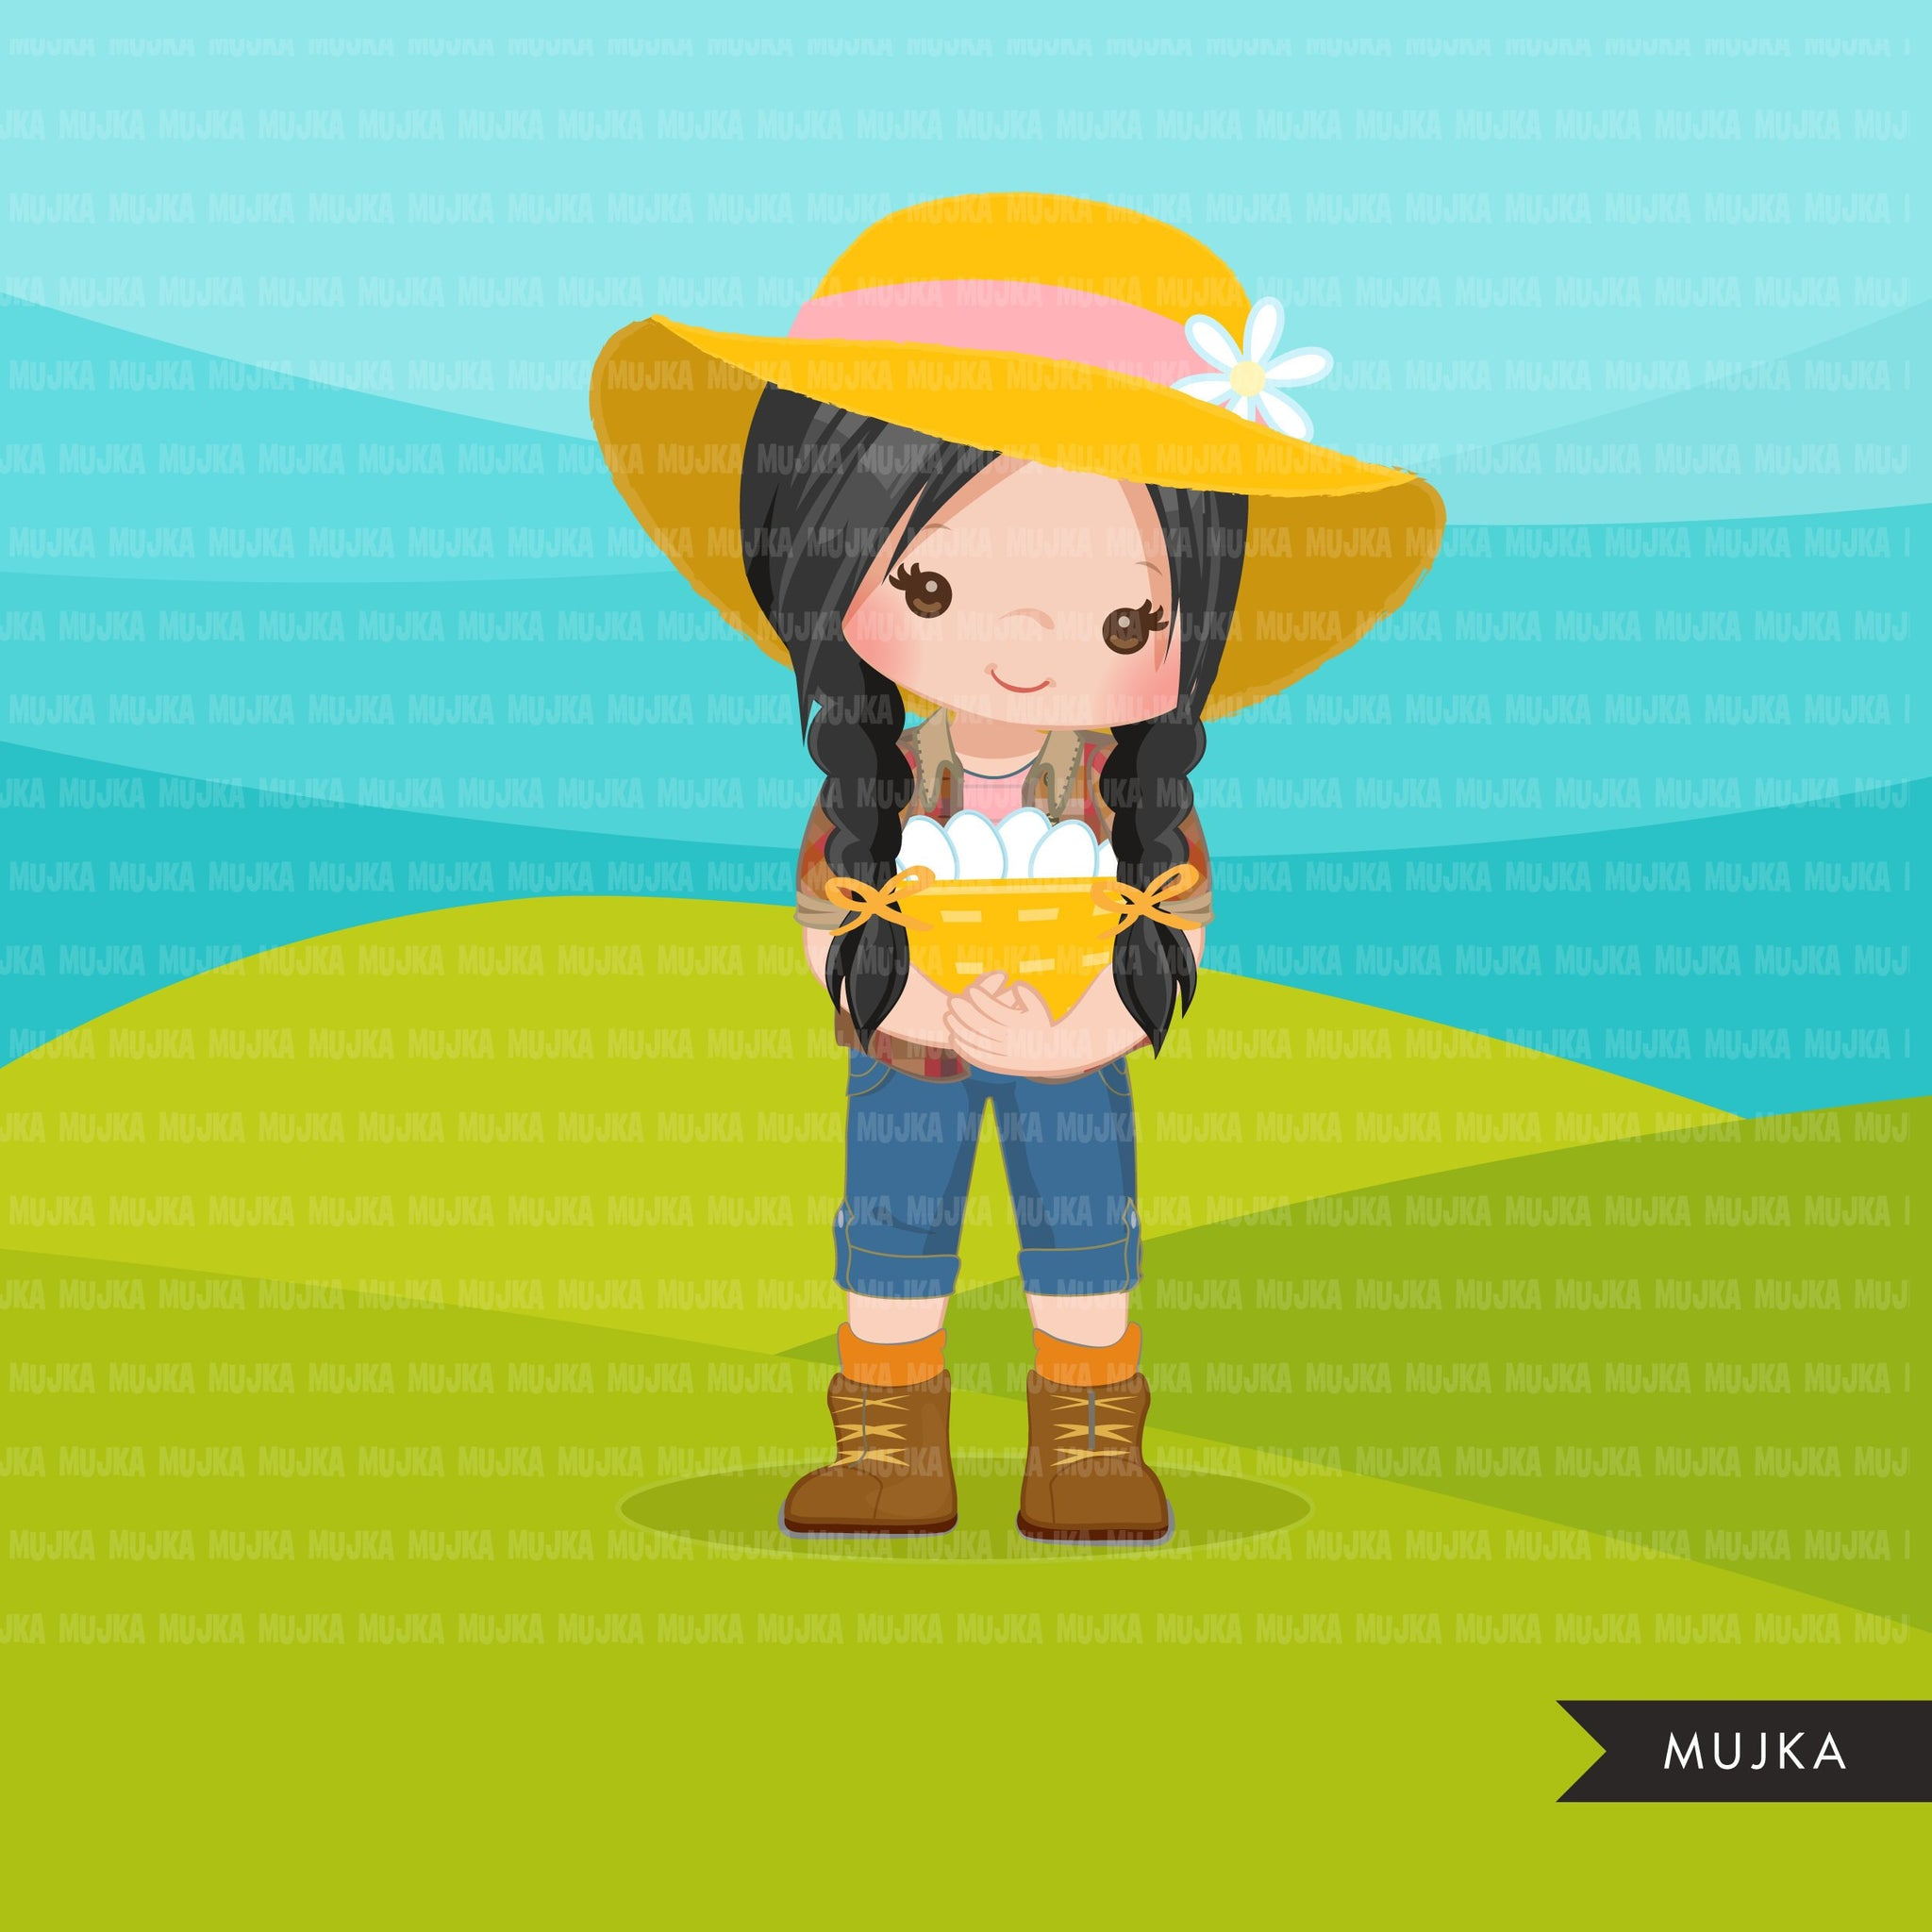 Farmer Girls clipart, farmer characters with basket of eggs, farmer hat, country graphics, country girl with hat